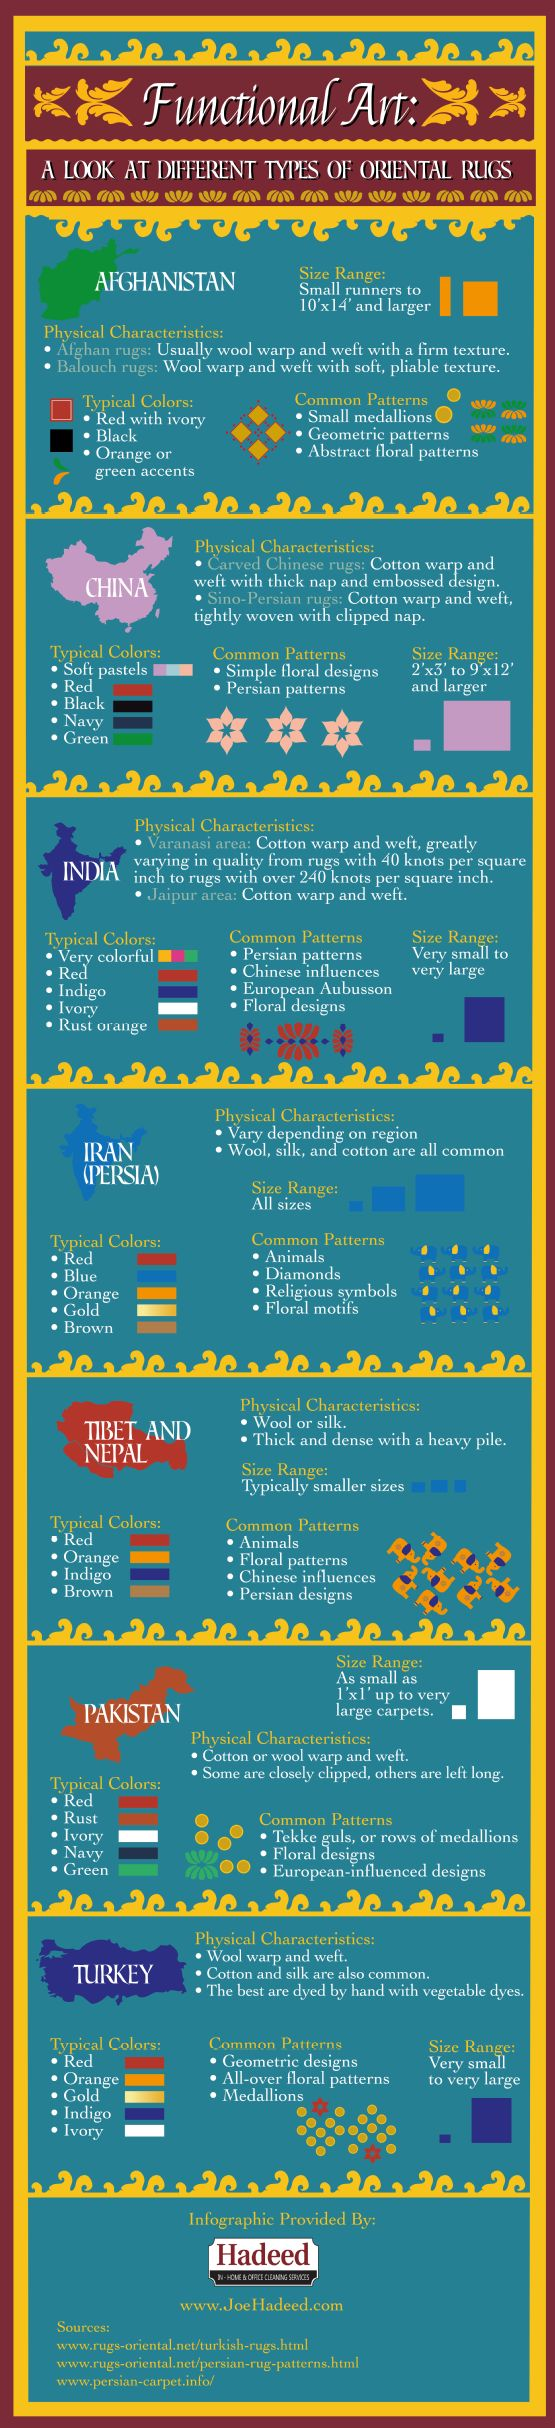 Persian rugs are available in all sizes and often feature animal designs, diamonds, religious symbols, or floral motifs. Created with wool, silk, and cotton, these rugs are made to last. This infographic from Washington, D.C.'s Hadeed Oriental Rug Cleaning offers more information. Source http://www.hadeedcarpetcleaning.com/646225/2013/02/14/functional-art-a-look-at-different-types-of-oriental-rugs-infographic.html